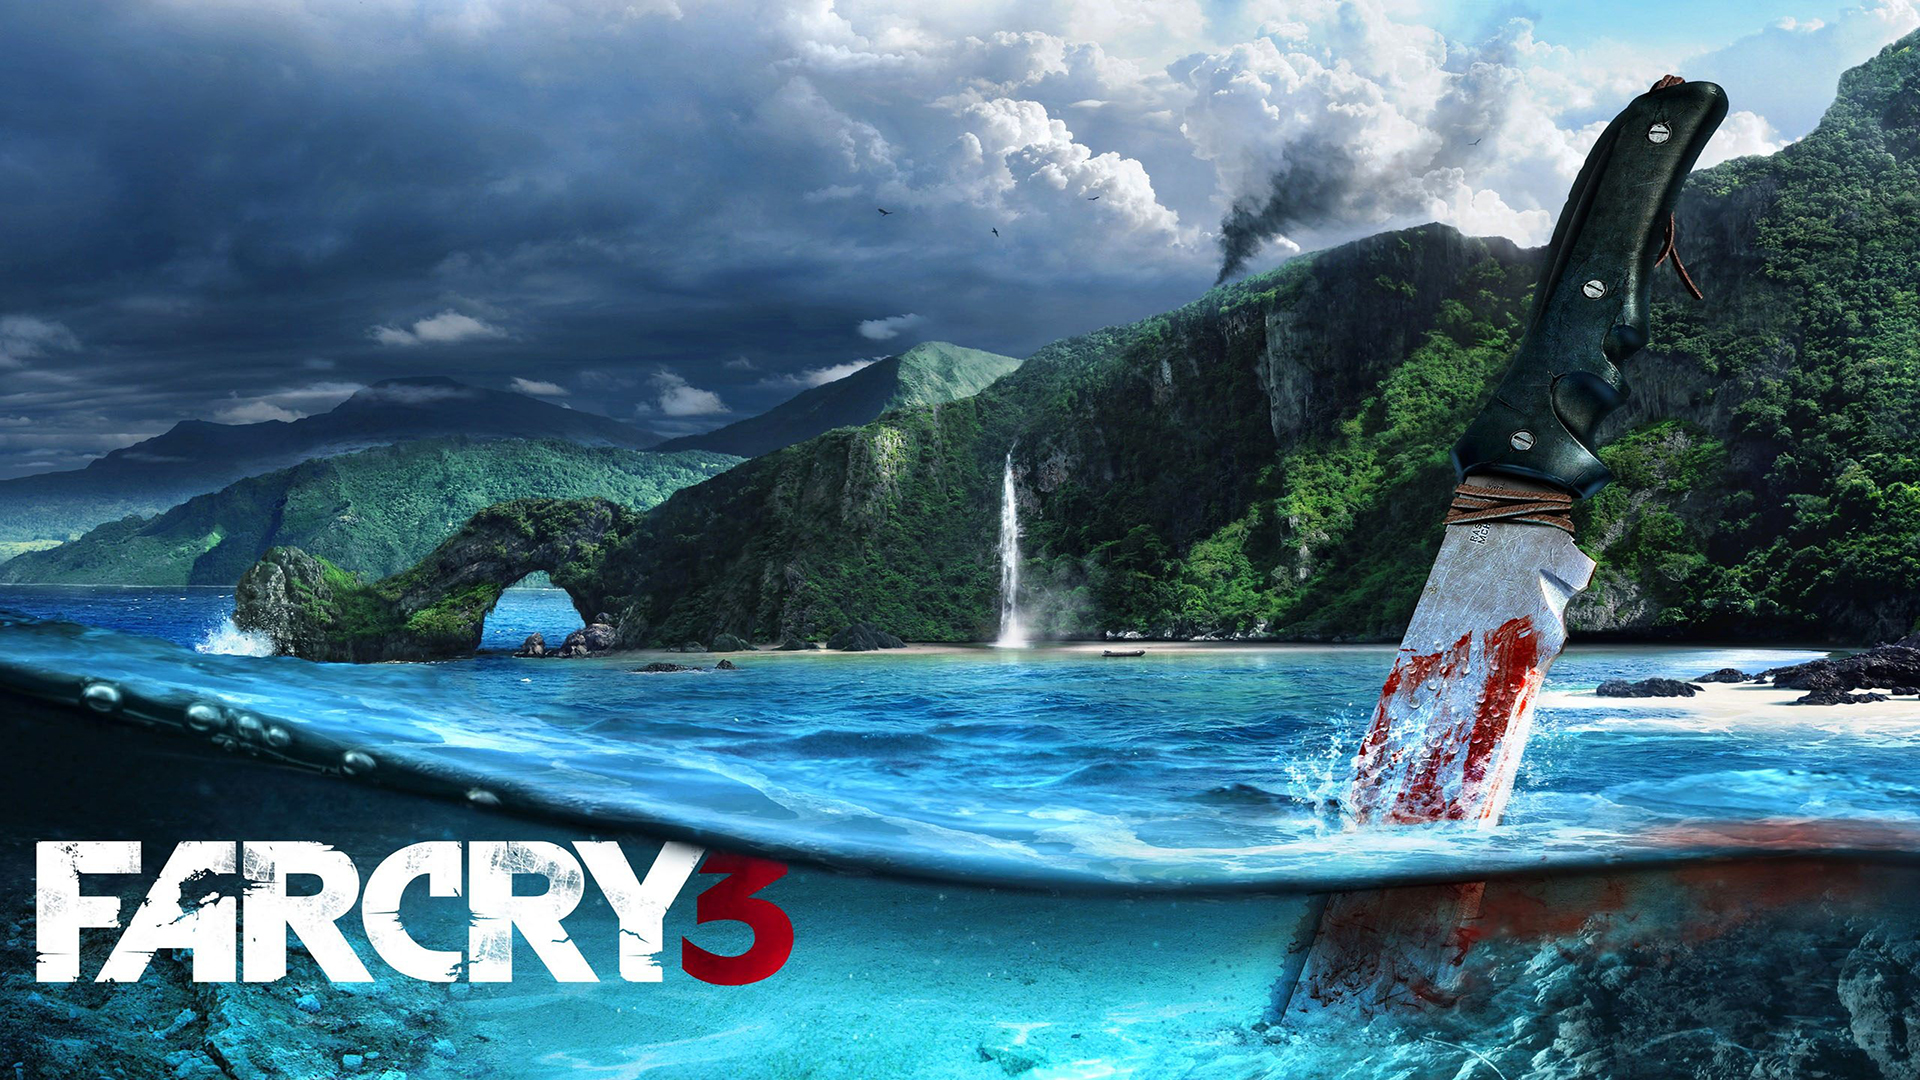 far cry 3 download free pc full